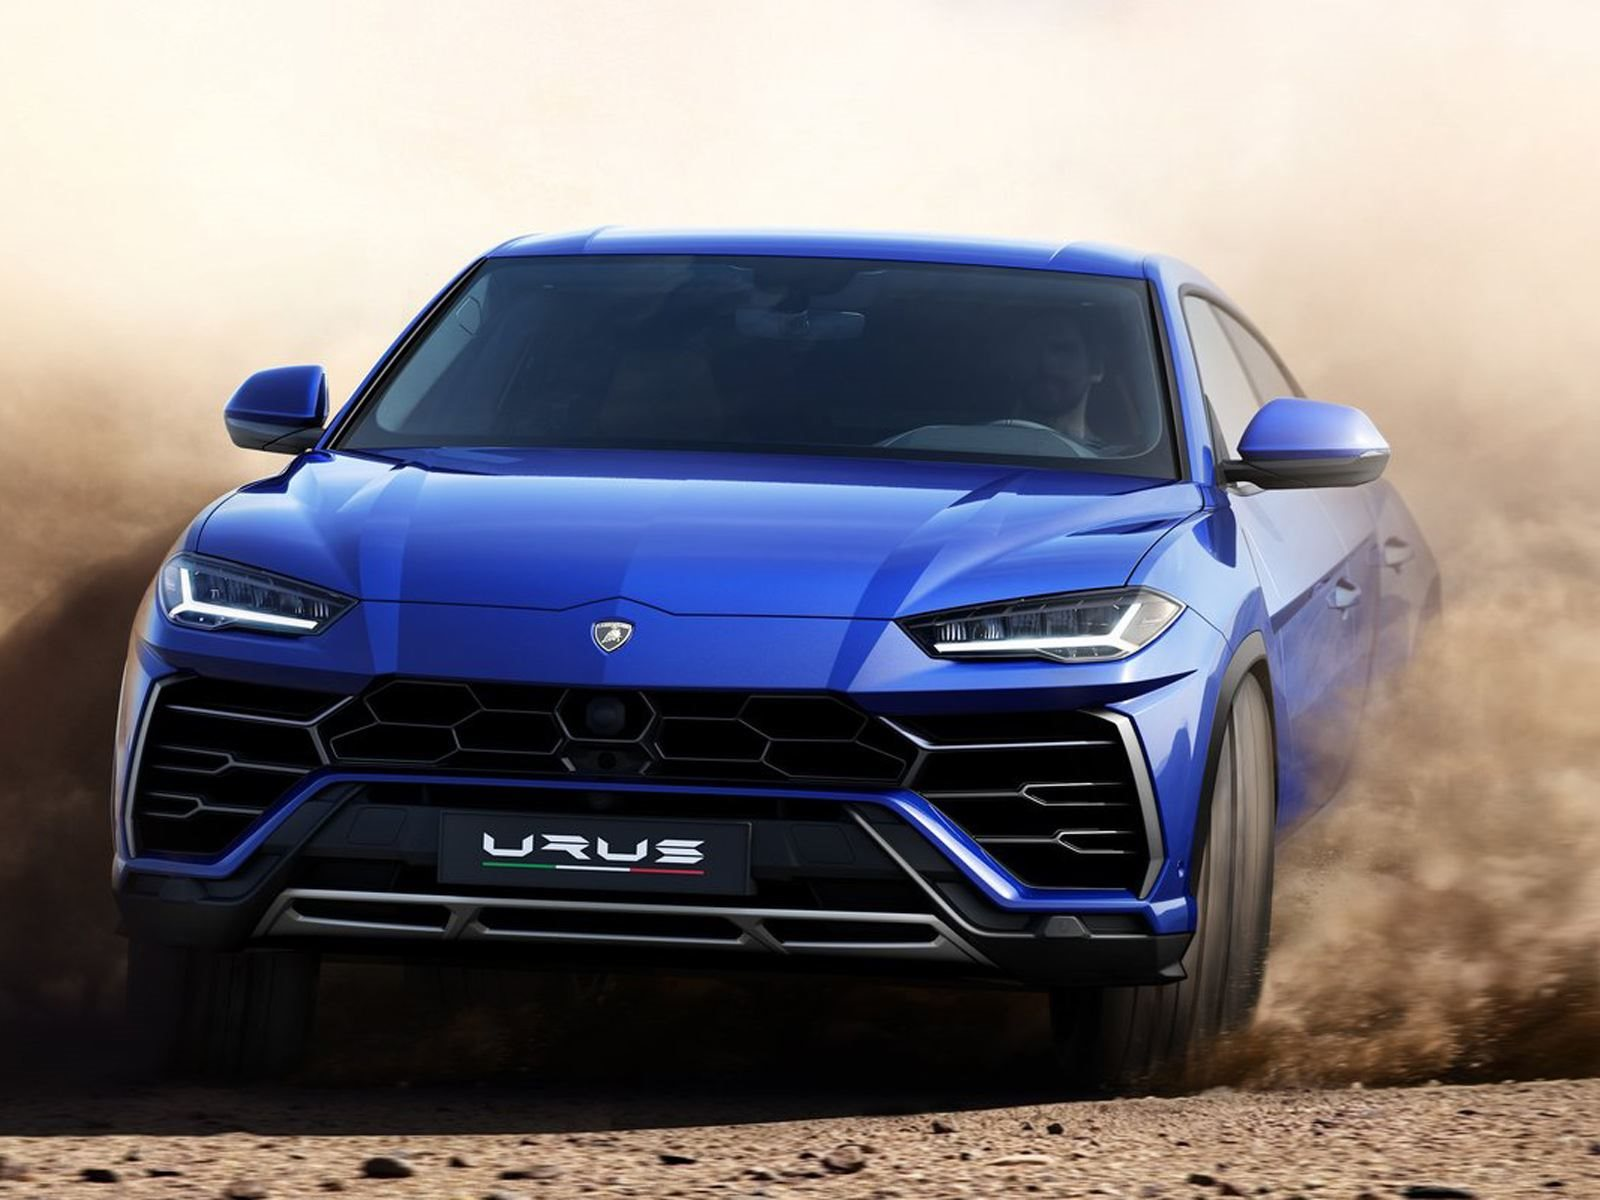 german dealerships already marking up lamborghini urus prices - carbuzz